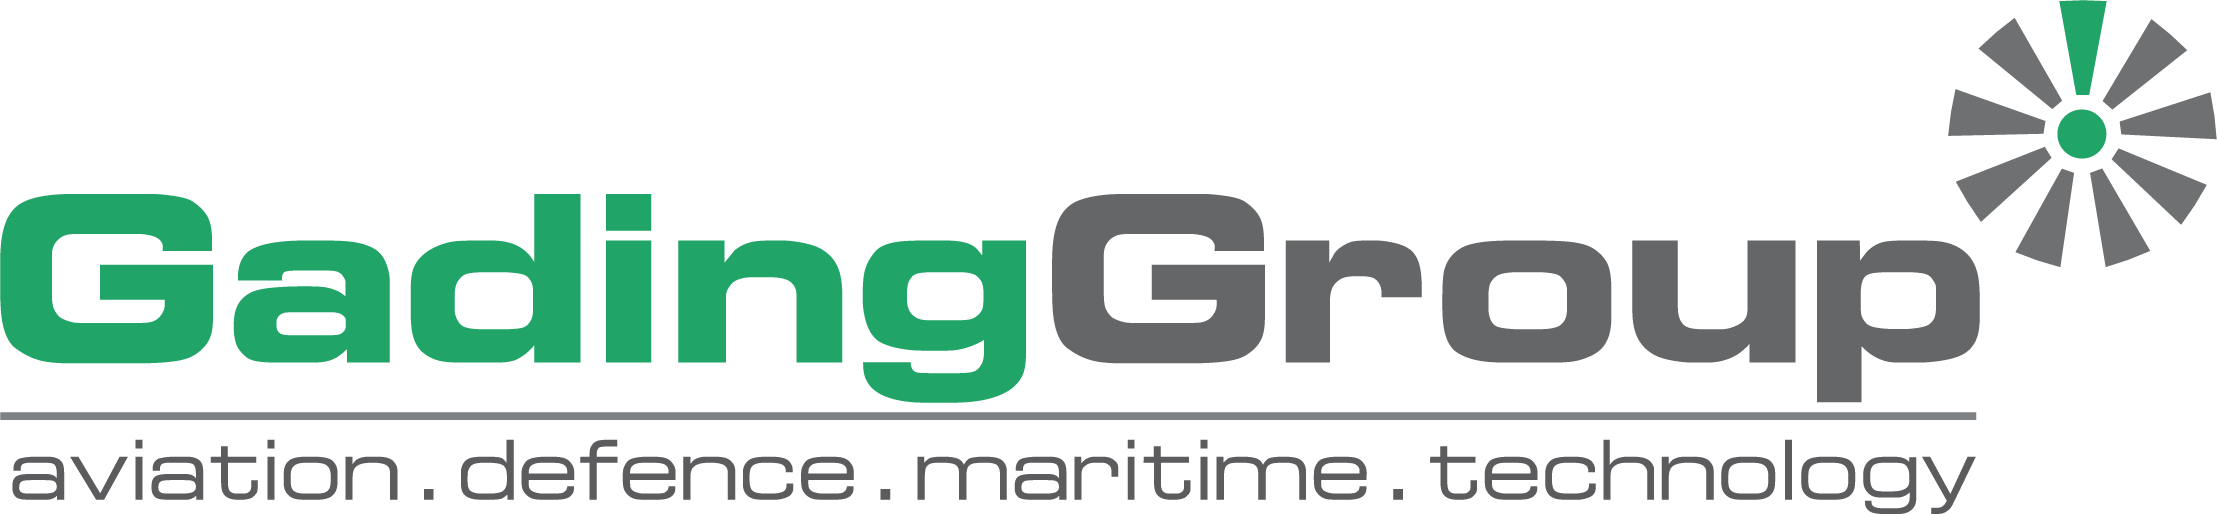 Gading Group Official Website